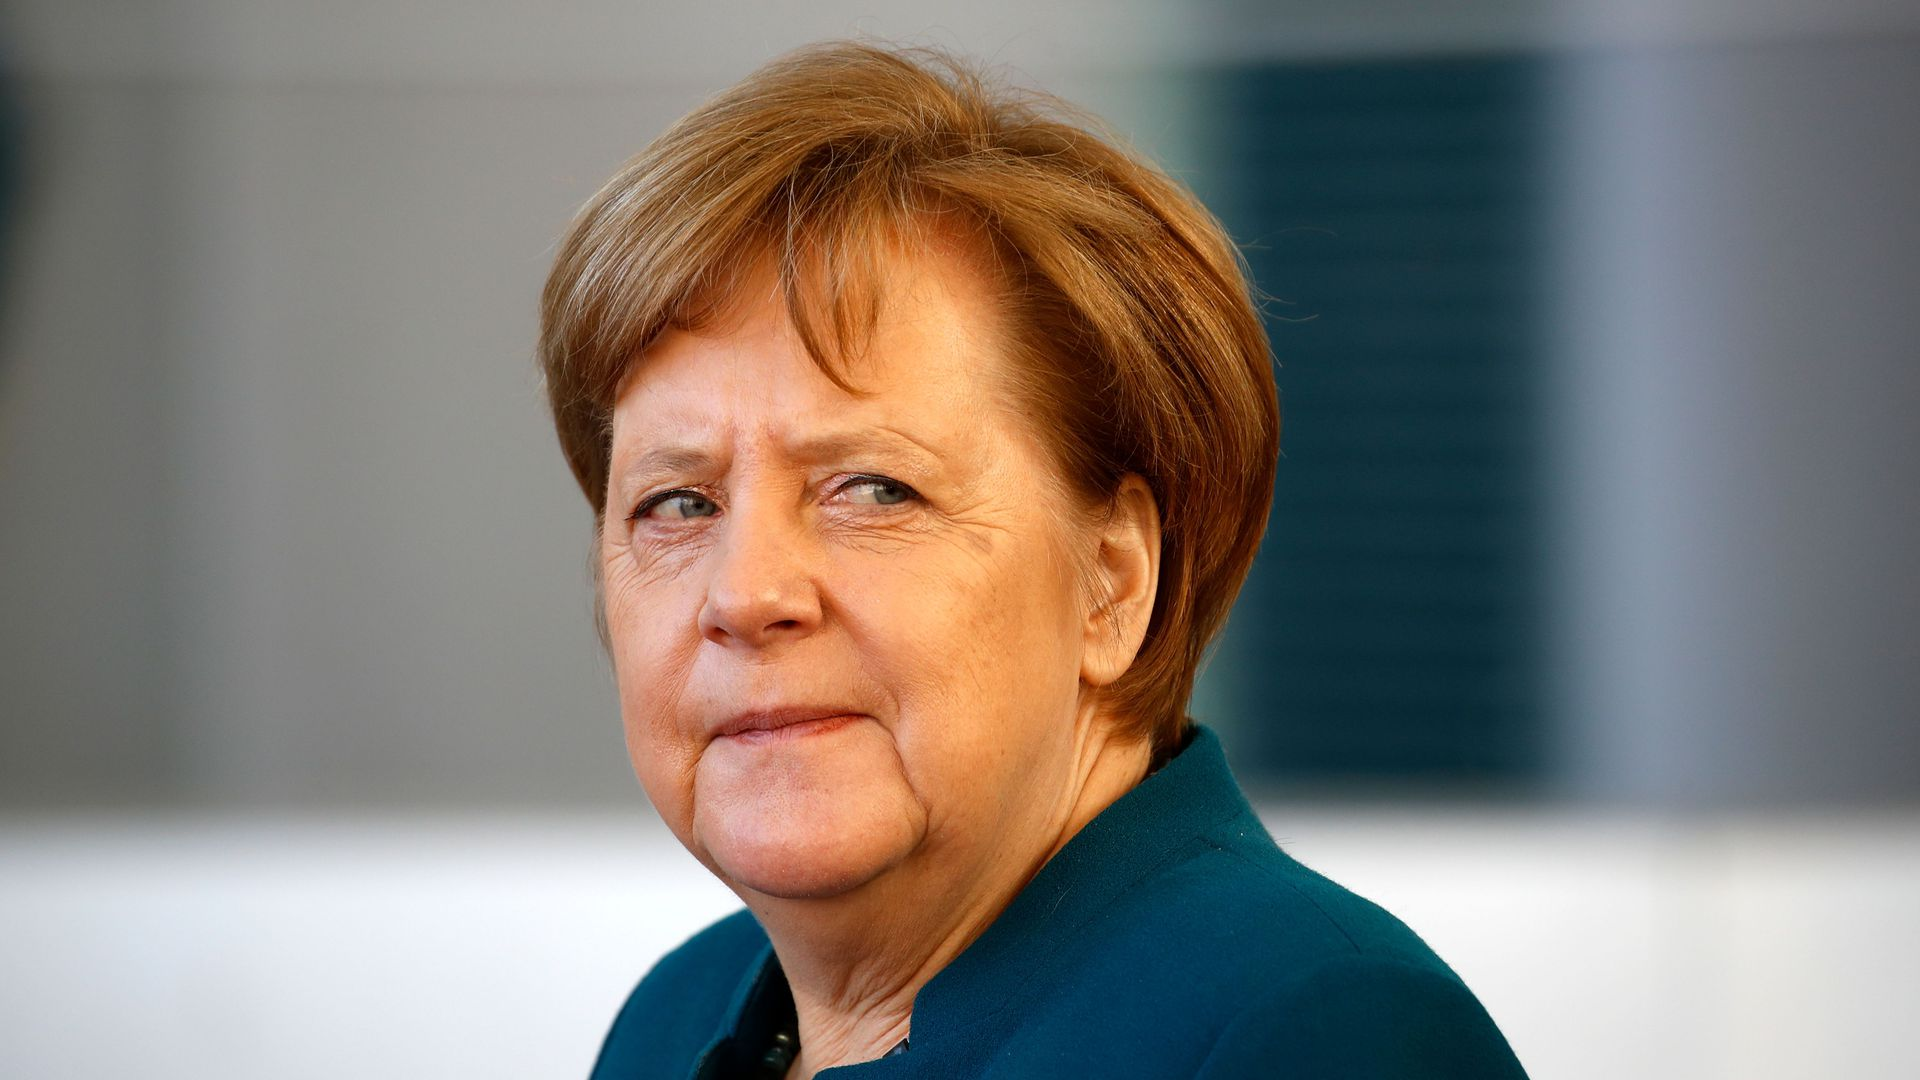 Angela Merkel looks skeptical.